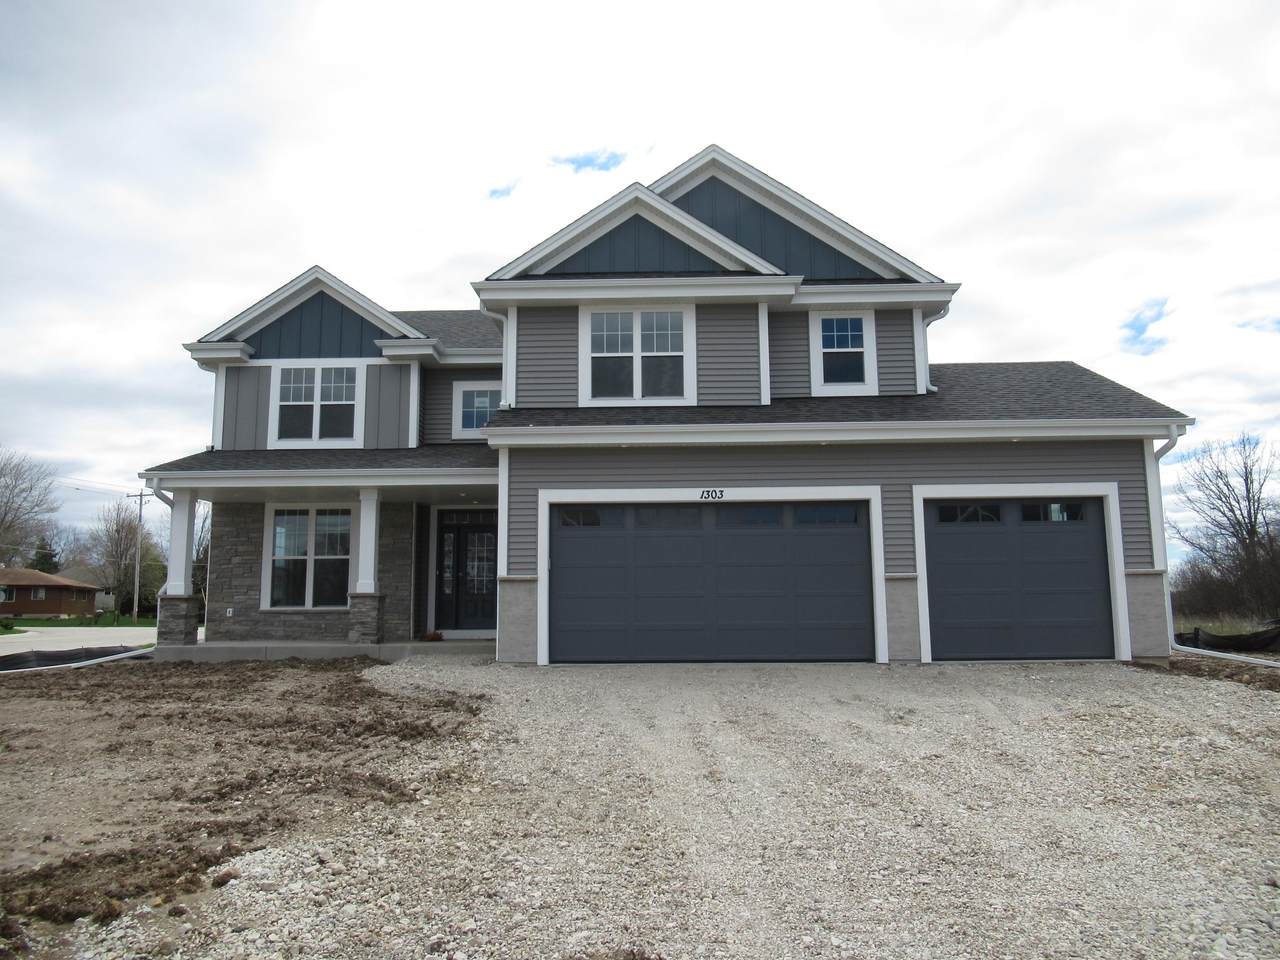 1303 Regees Rd - Photo 1